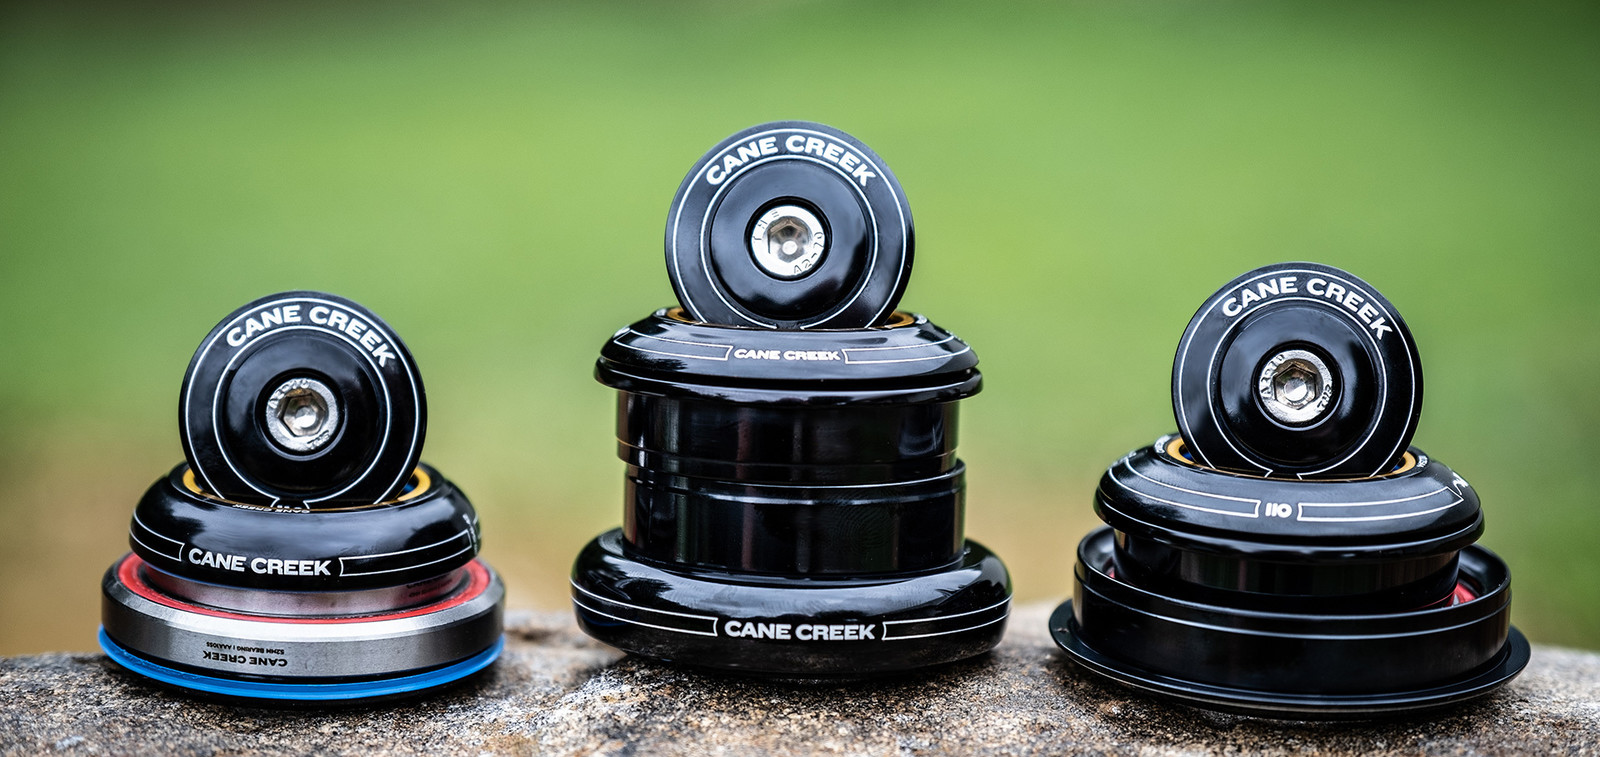 Cane Creek Announces Lifetime Guarantee on 110 Series Headsets